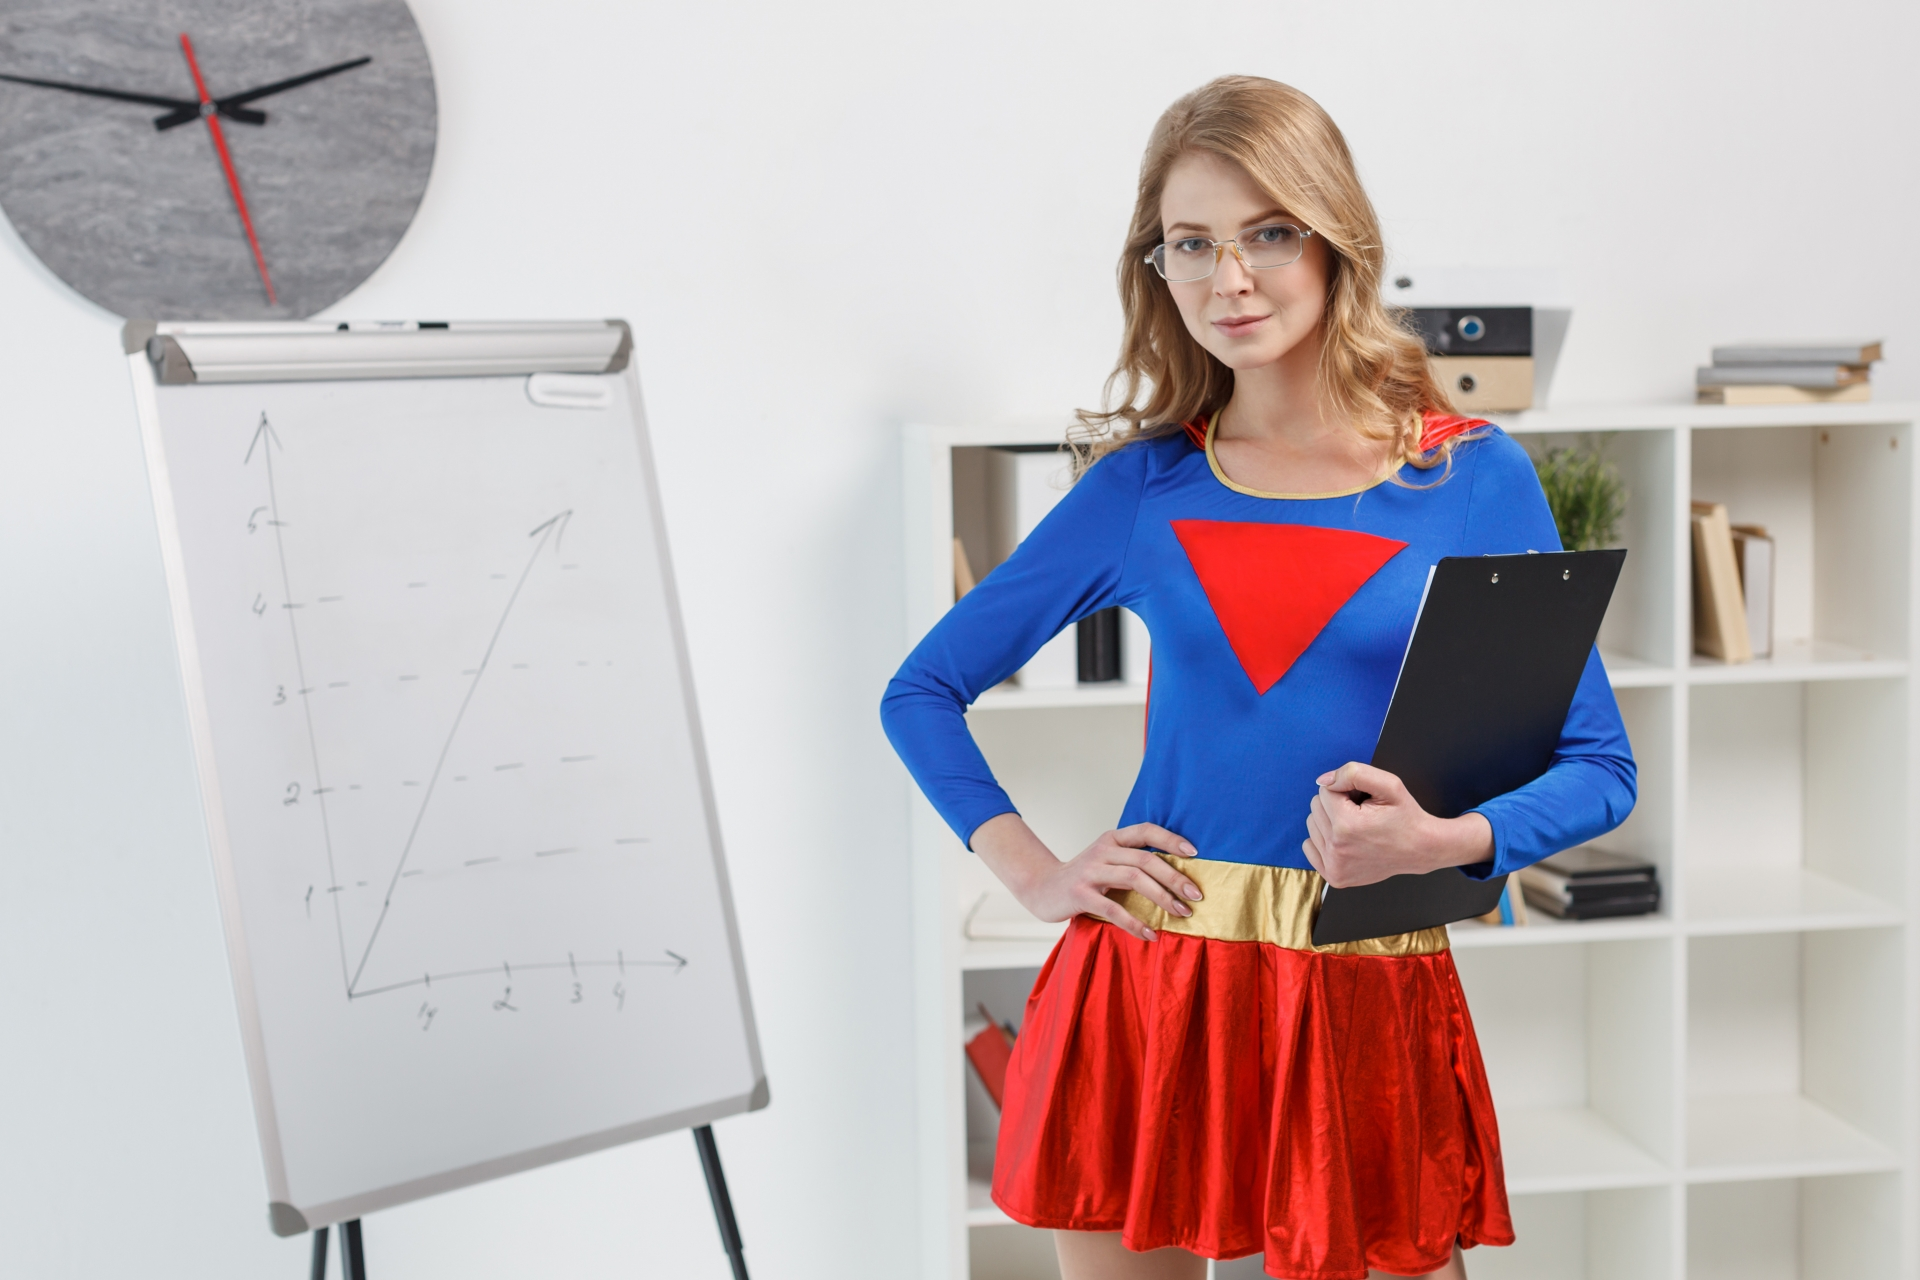 superman-uniform-business-woman-4